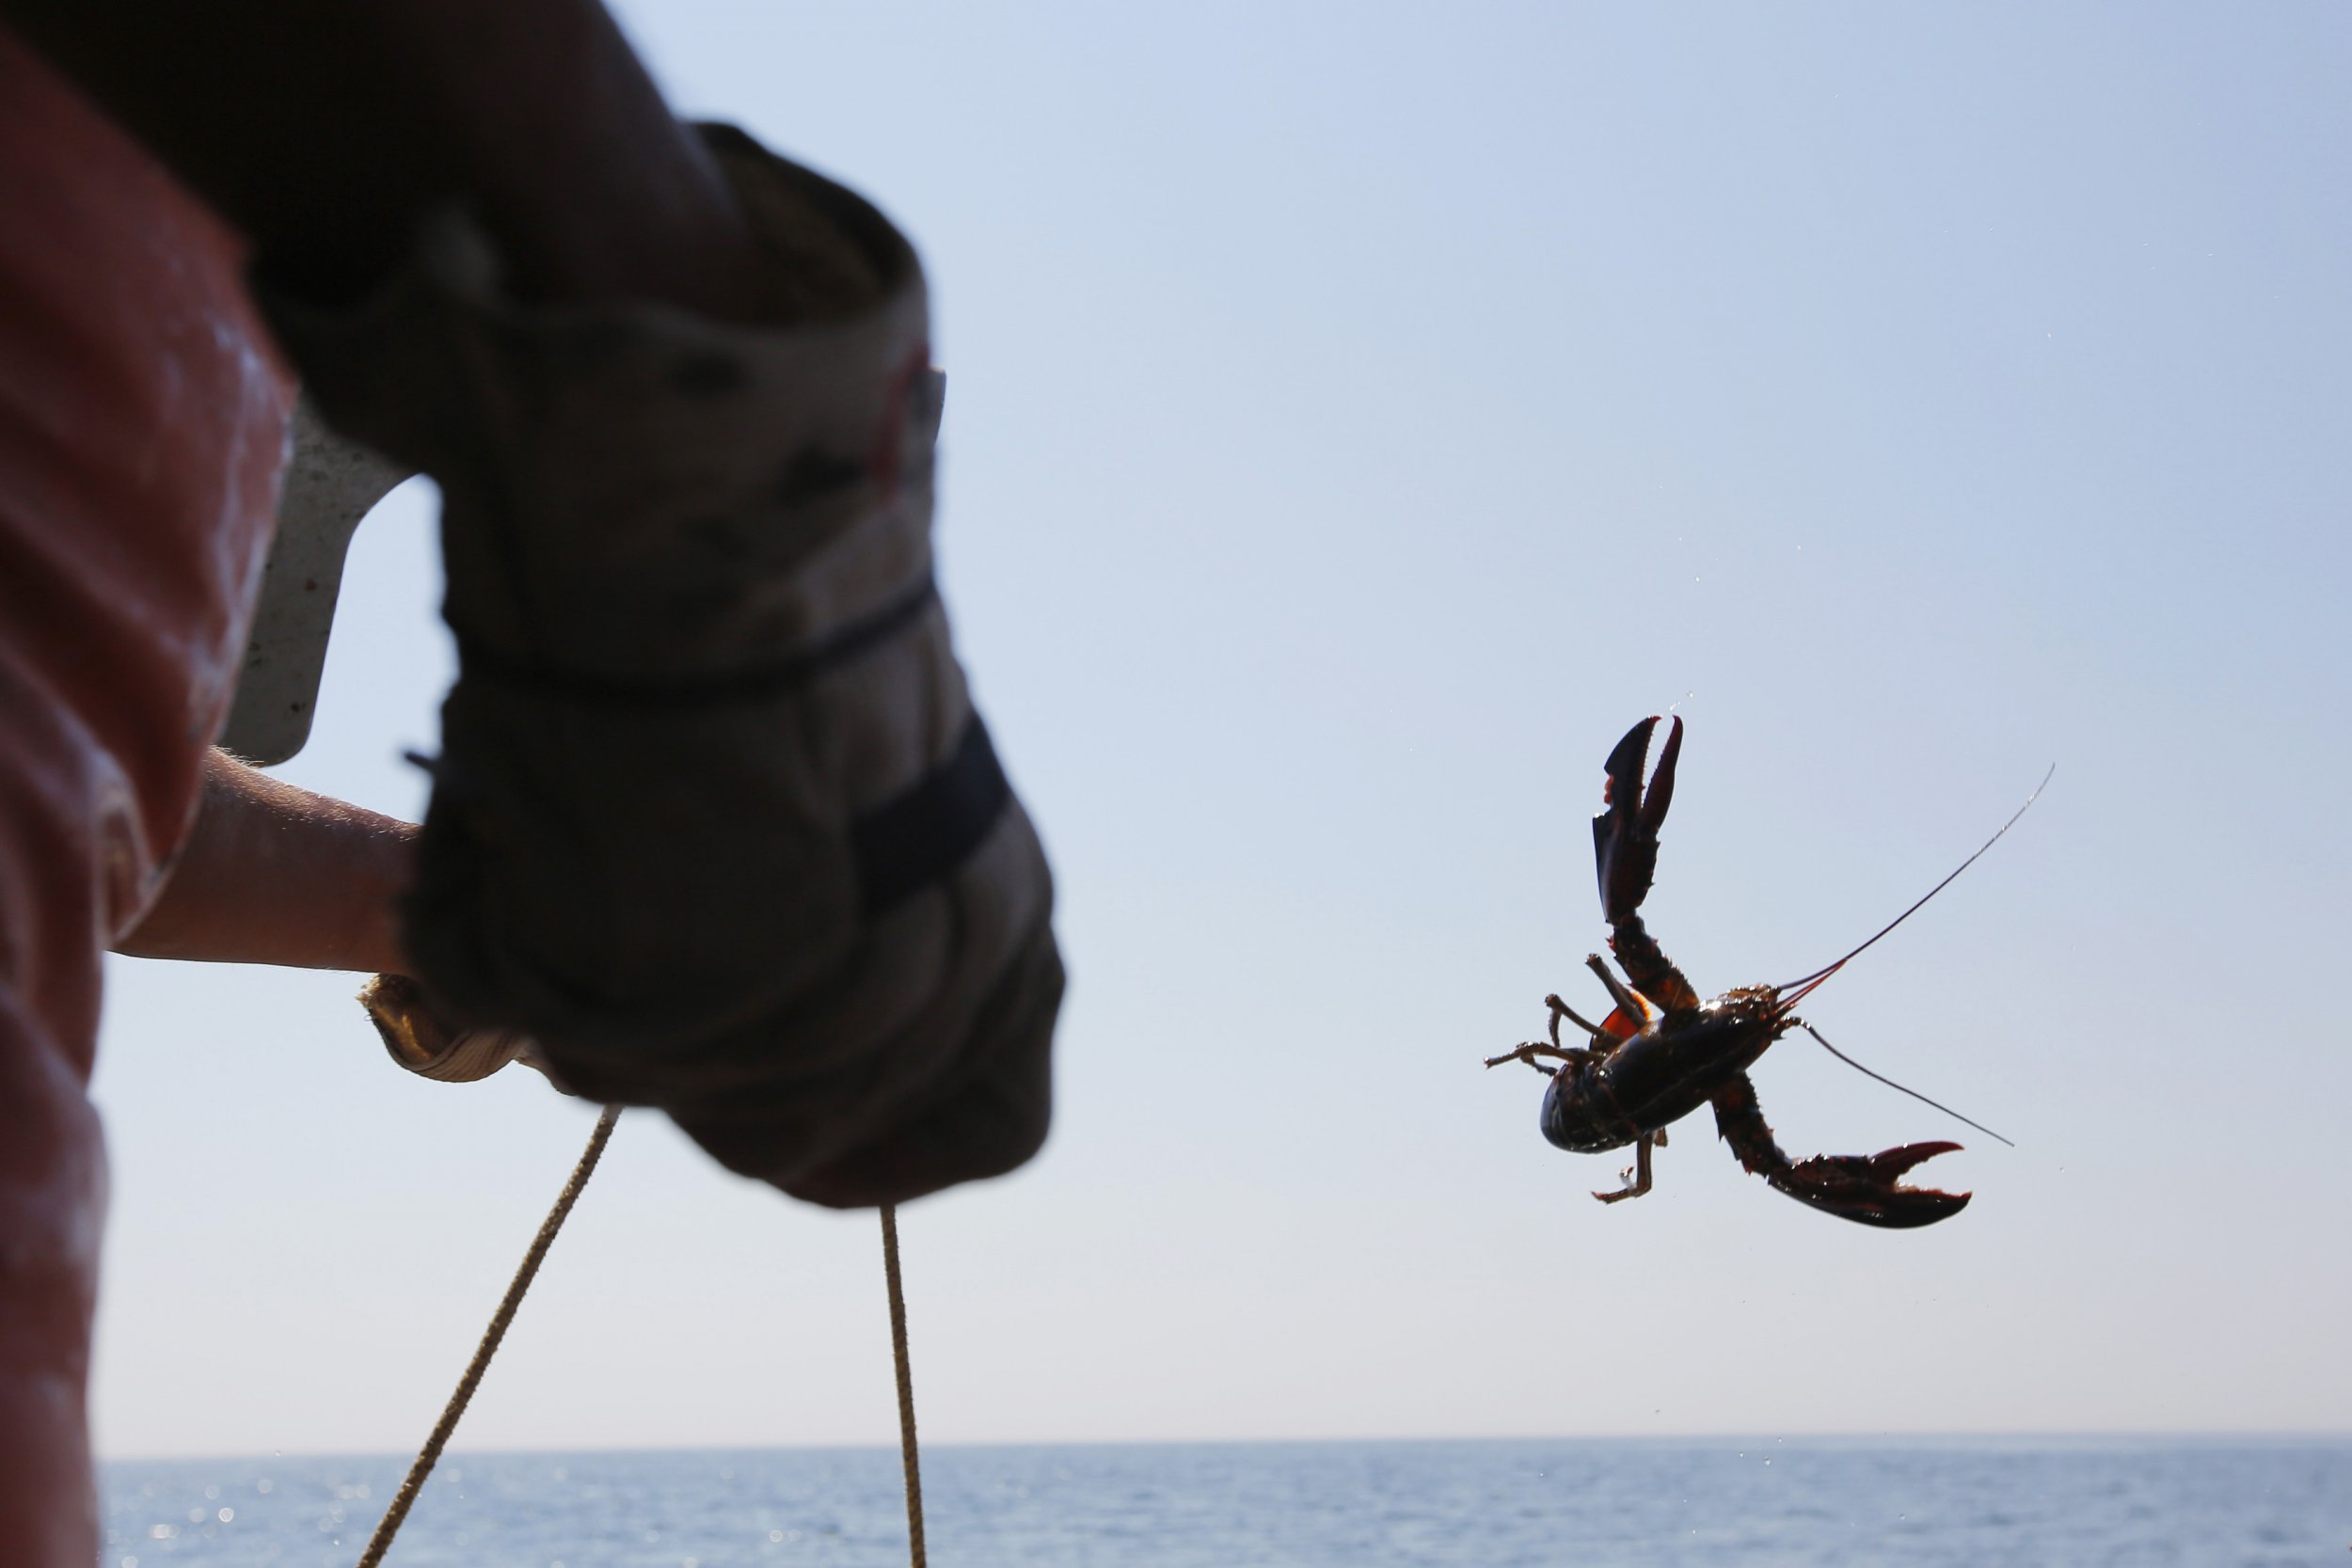 Lobster fishing and climate change